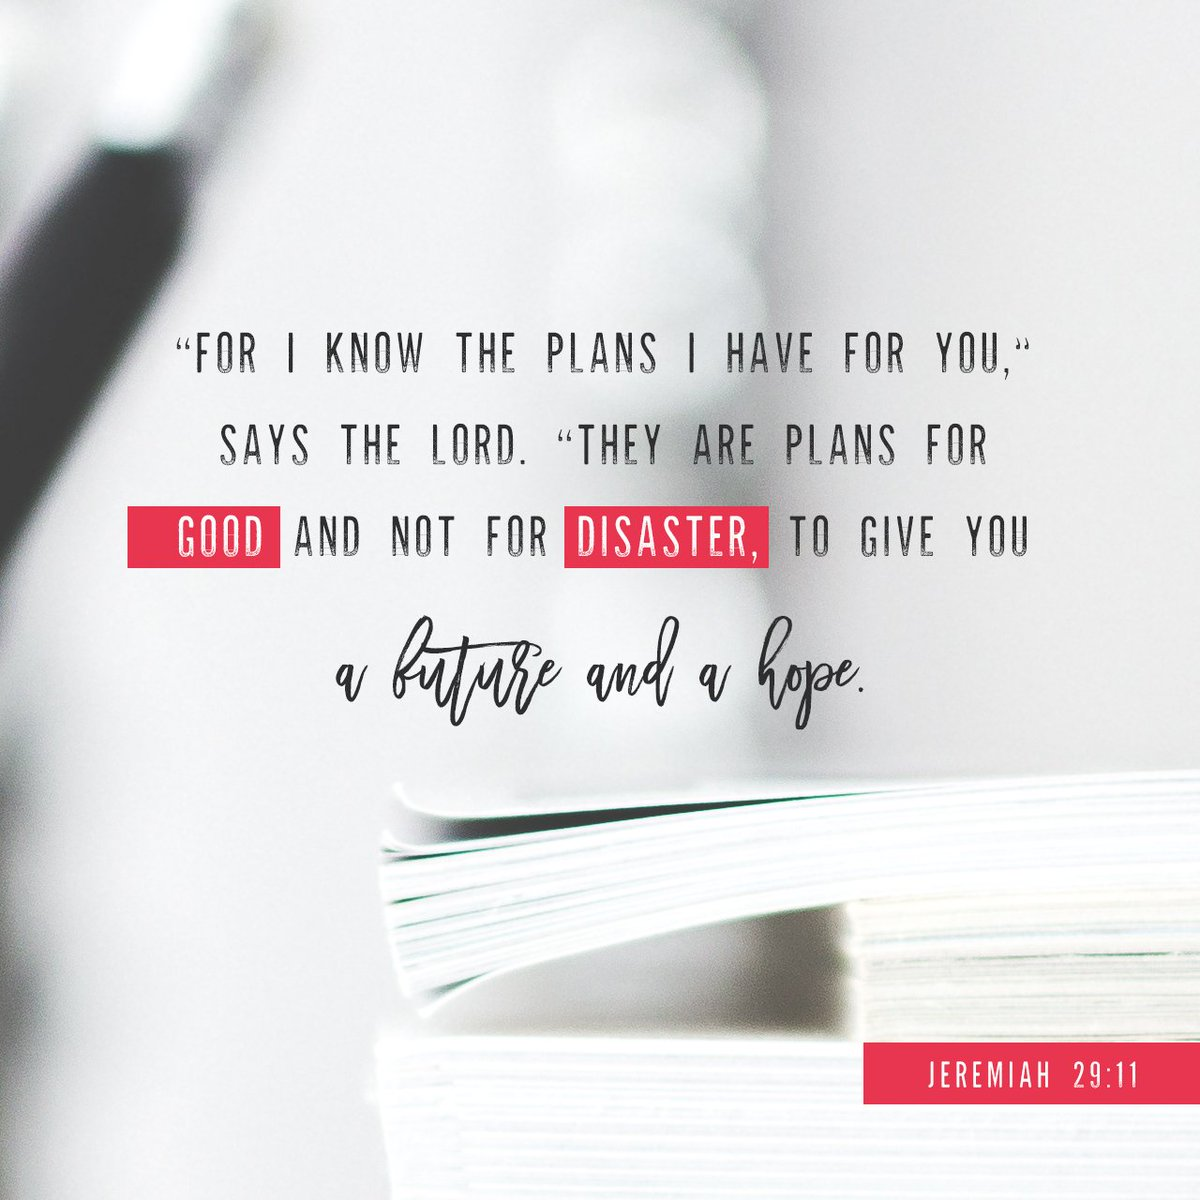 """For I know the plans I have for you,"""" says the LORD. """"They are plans for good and not for… https://t.co/LedjJyoaAG https://t.co/PNdXGeCdRd"""